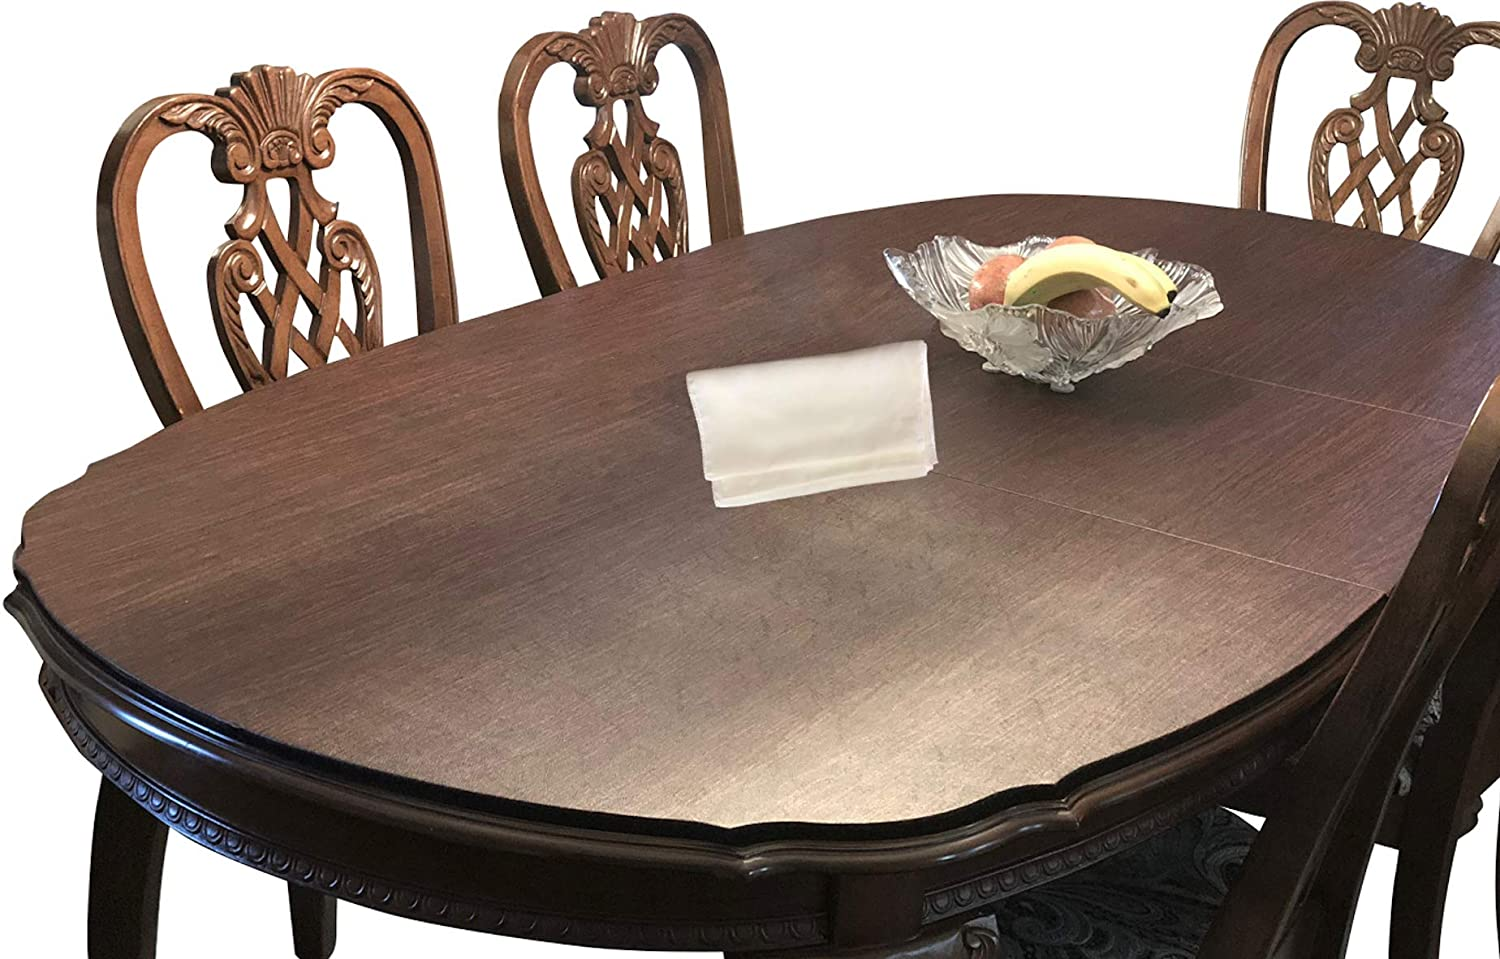 "Table Pads for DINING ROOM TABLE Custom Made, TOP of the Line, PREMIUM Quality Table Pads with LEAF EXTENSIONS included | Bundle with L&L TABLE RUNNER (2 Items) | (Maximum size: 120"" long by 60"" wide)"